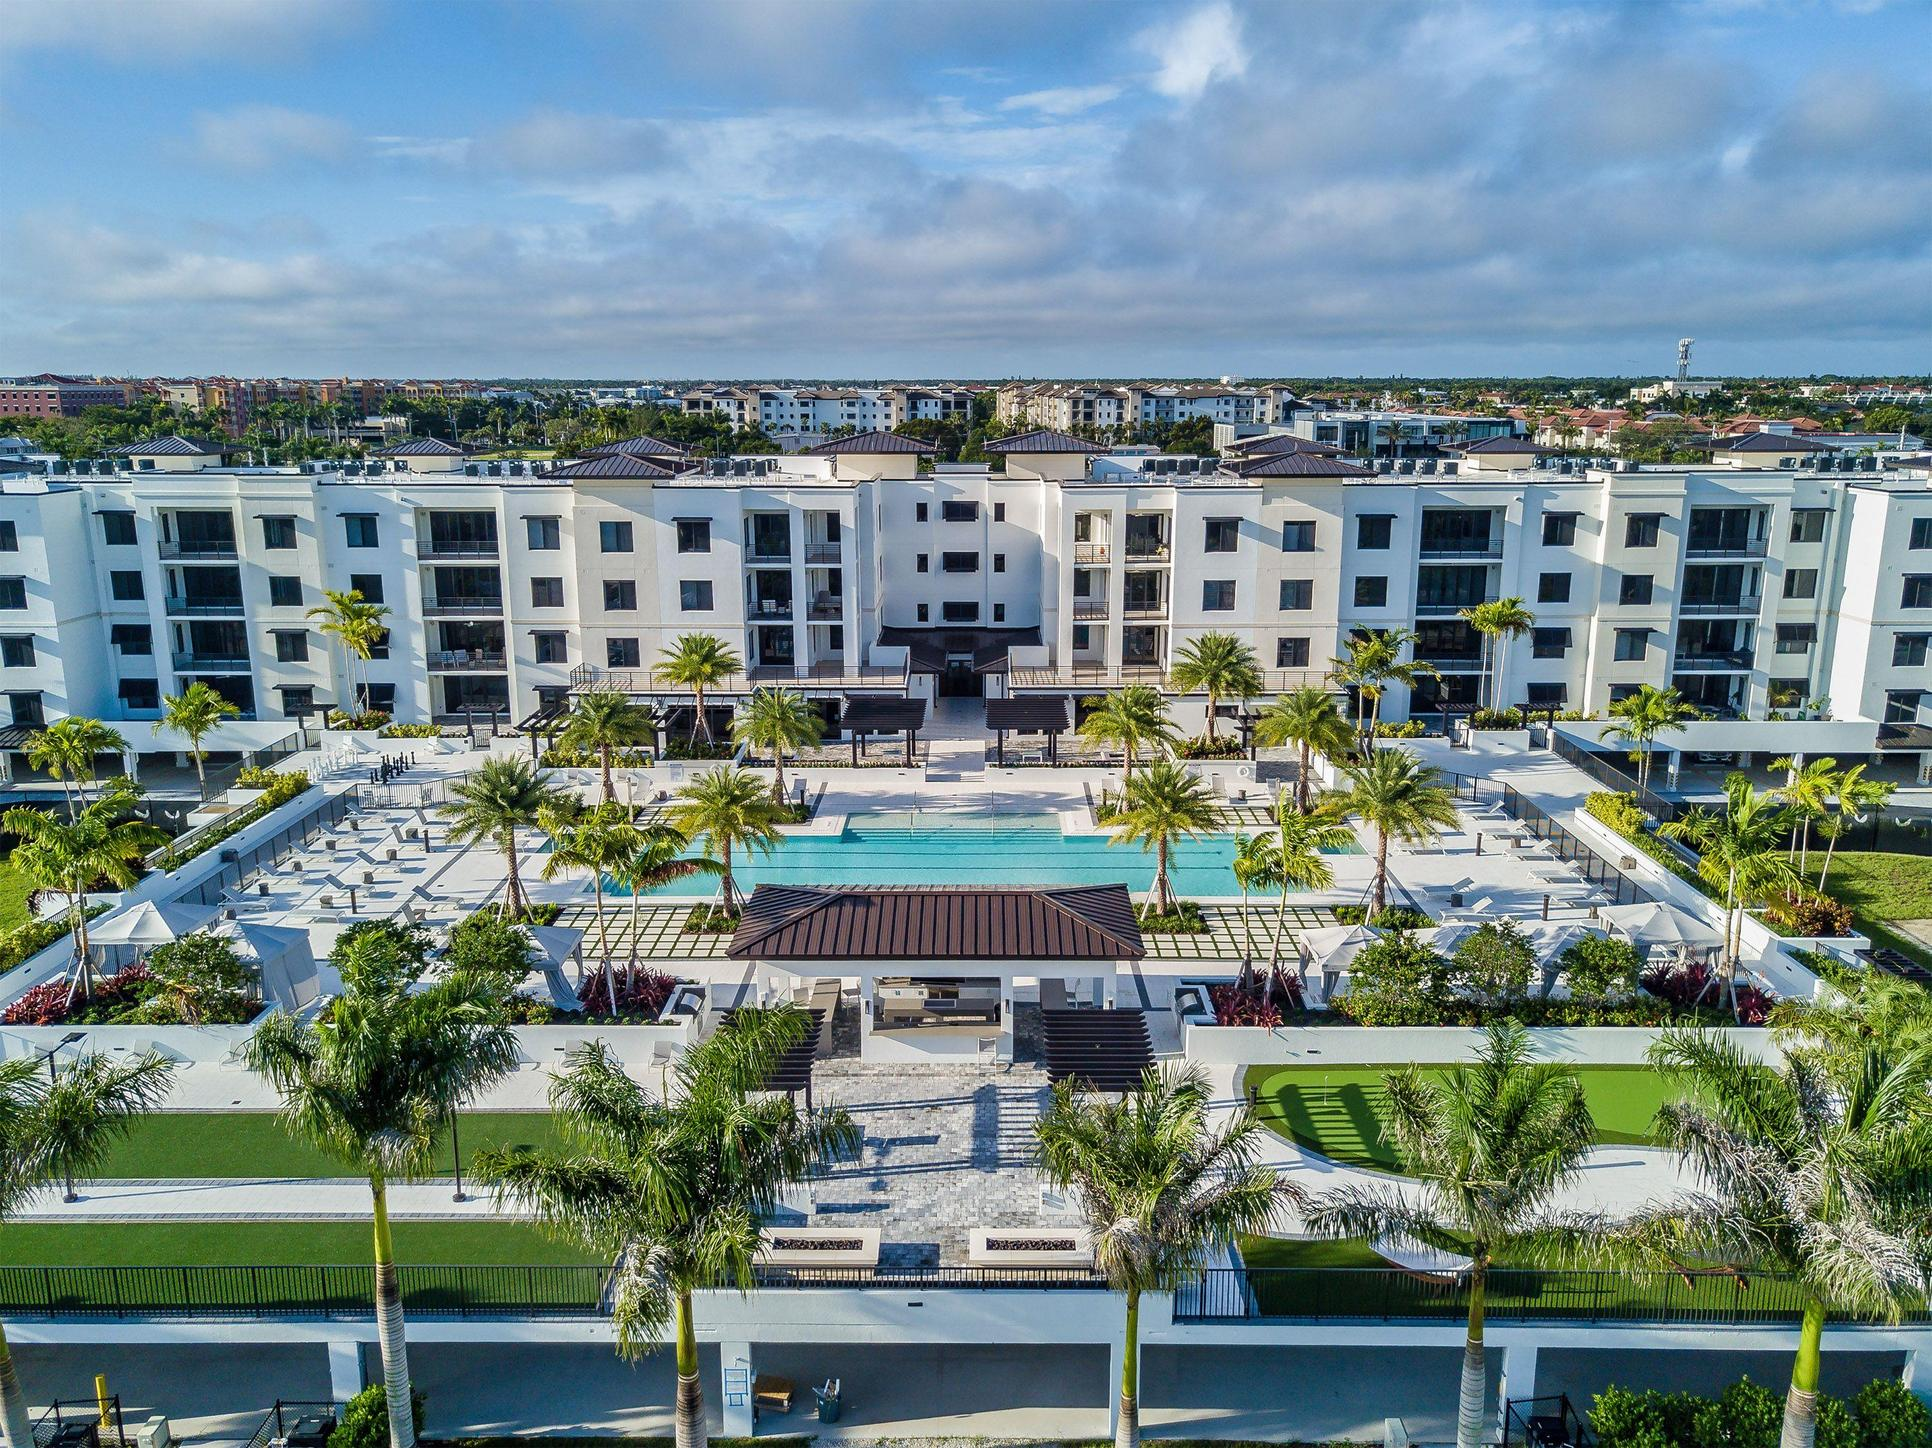 Courtyard Amenities:3,200 S.F. resort-style swimming pool with two 90 ft. lap lanes, cabanas for shade, gas grills, gas-powered fire tables, bocce ball courts, life-size chess game